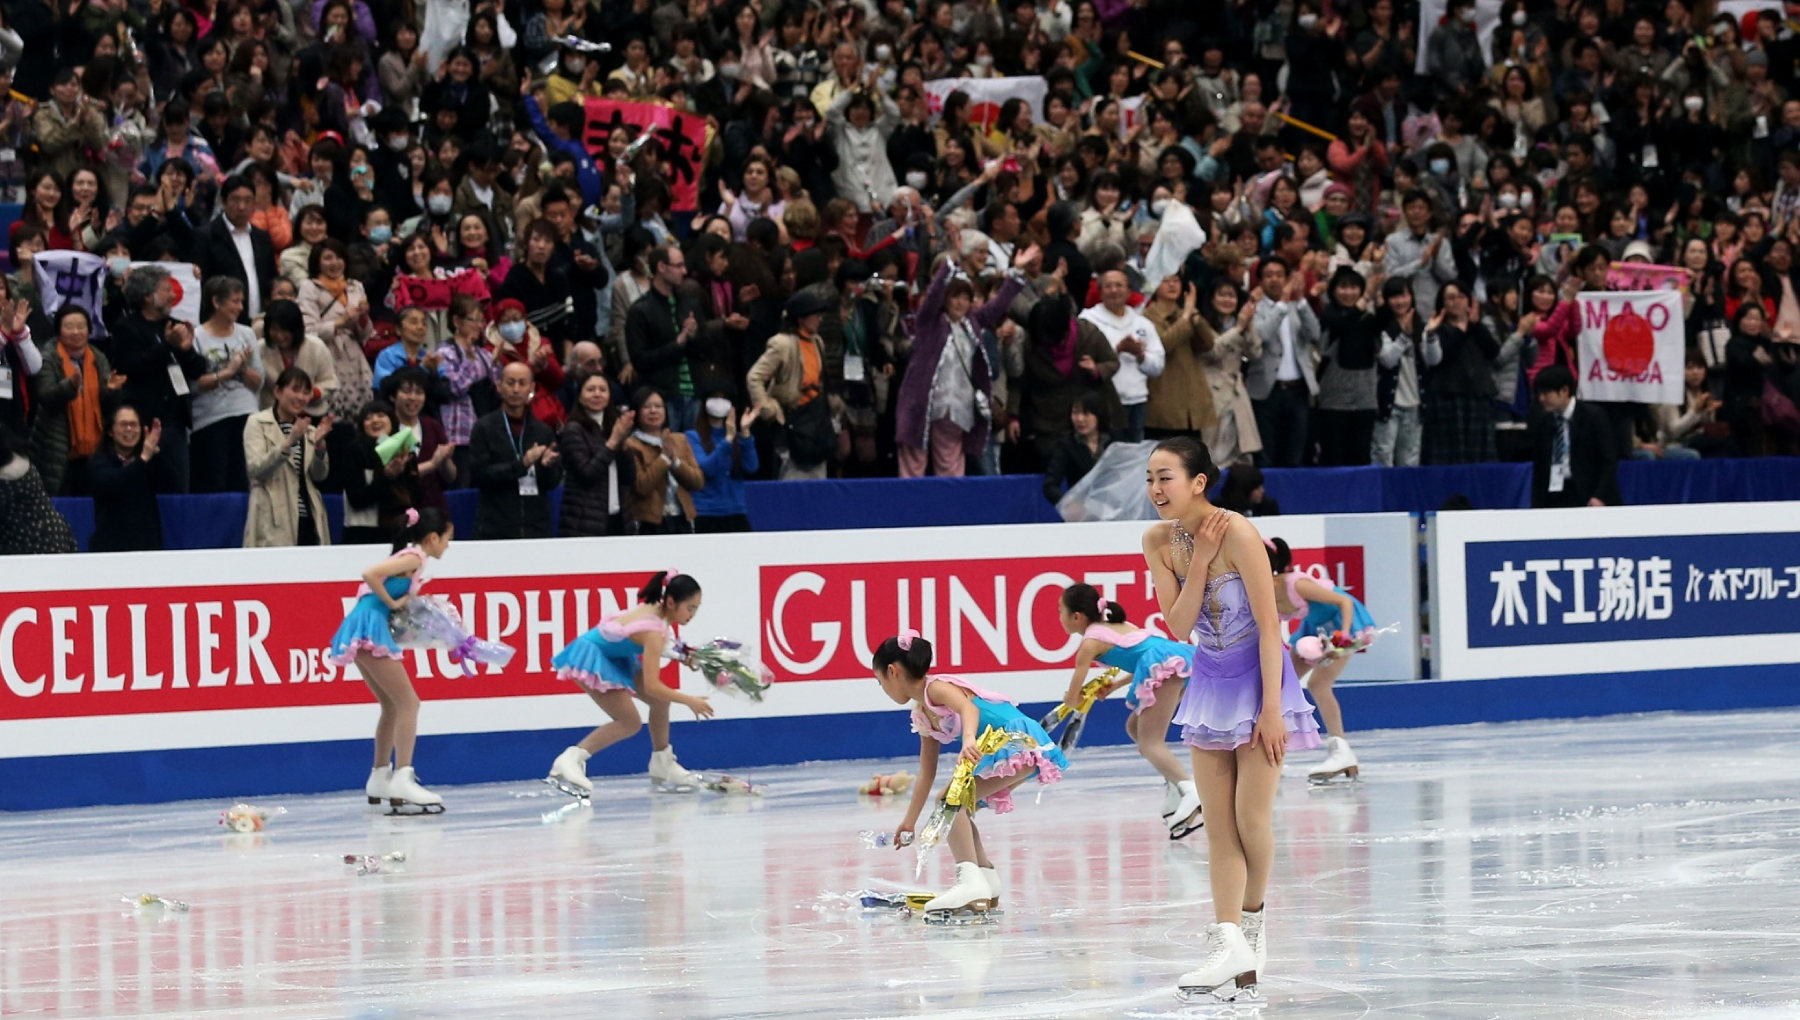 INTERNATIONAL SKATING UNION (ISU)